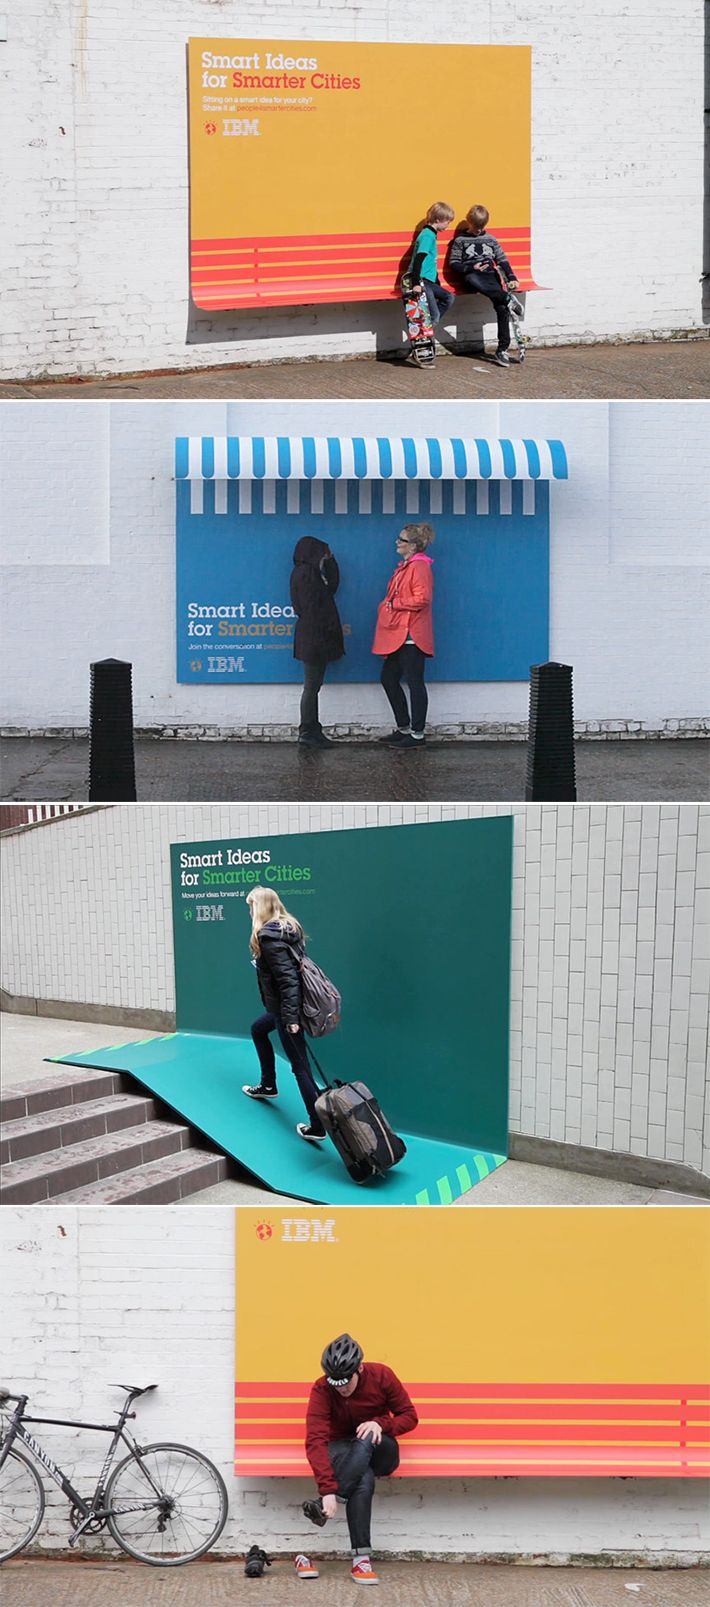 Smart Ideas for Smarter Cities - IBM invente la publicité intelligente